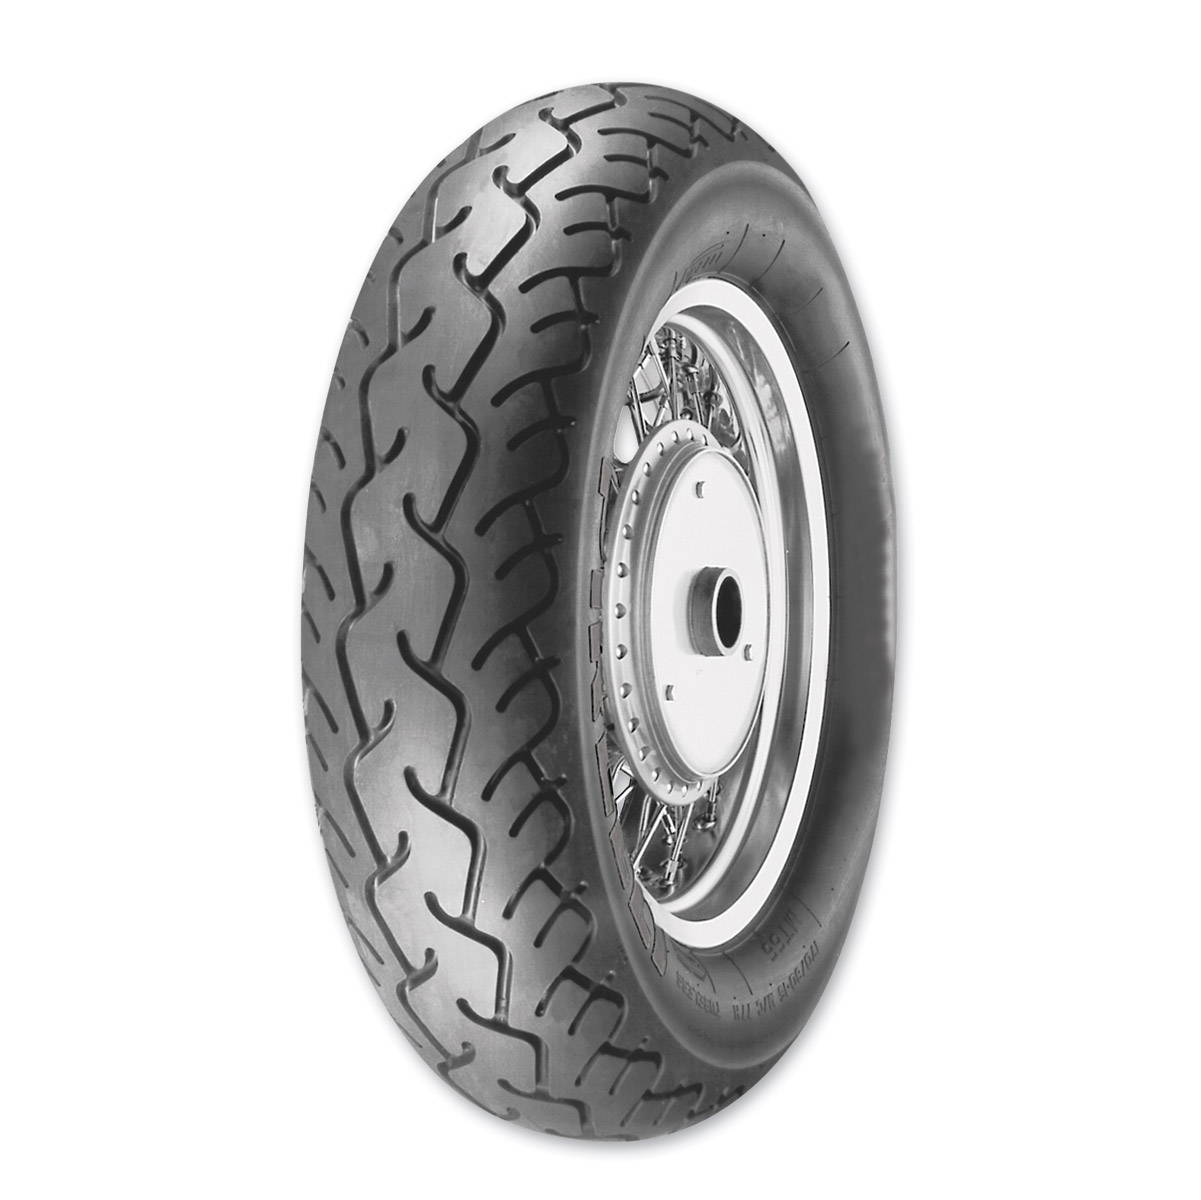 Pirelli MT66 Route 180/70-15 Rear Tire